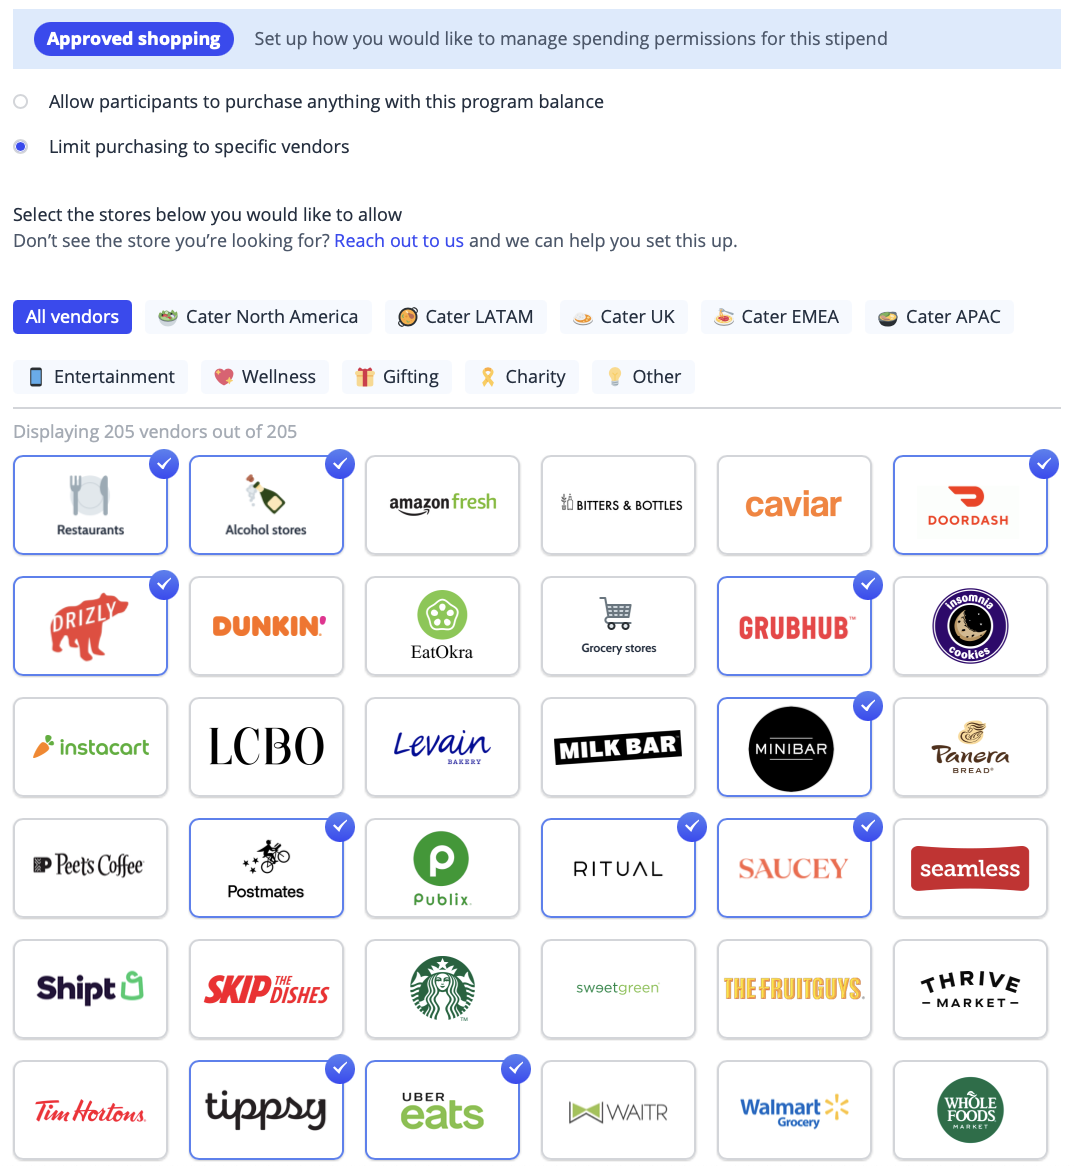 Approved vendors that guests can shop with using their virtual credit card